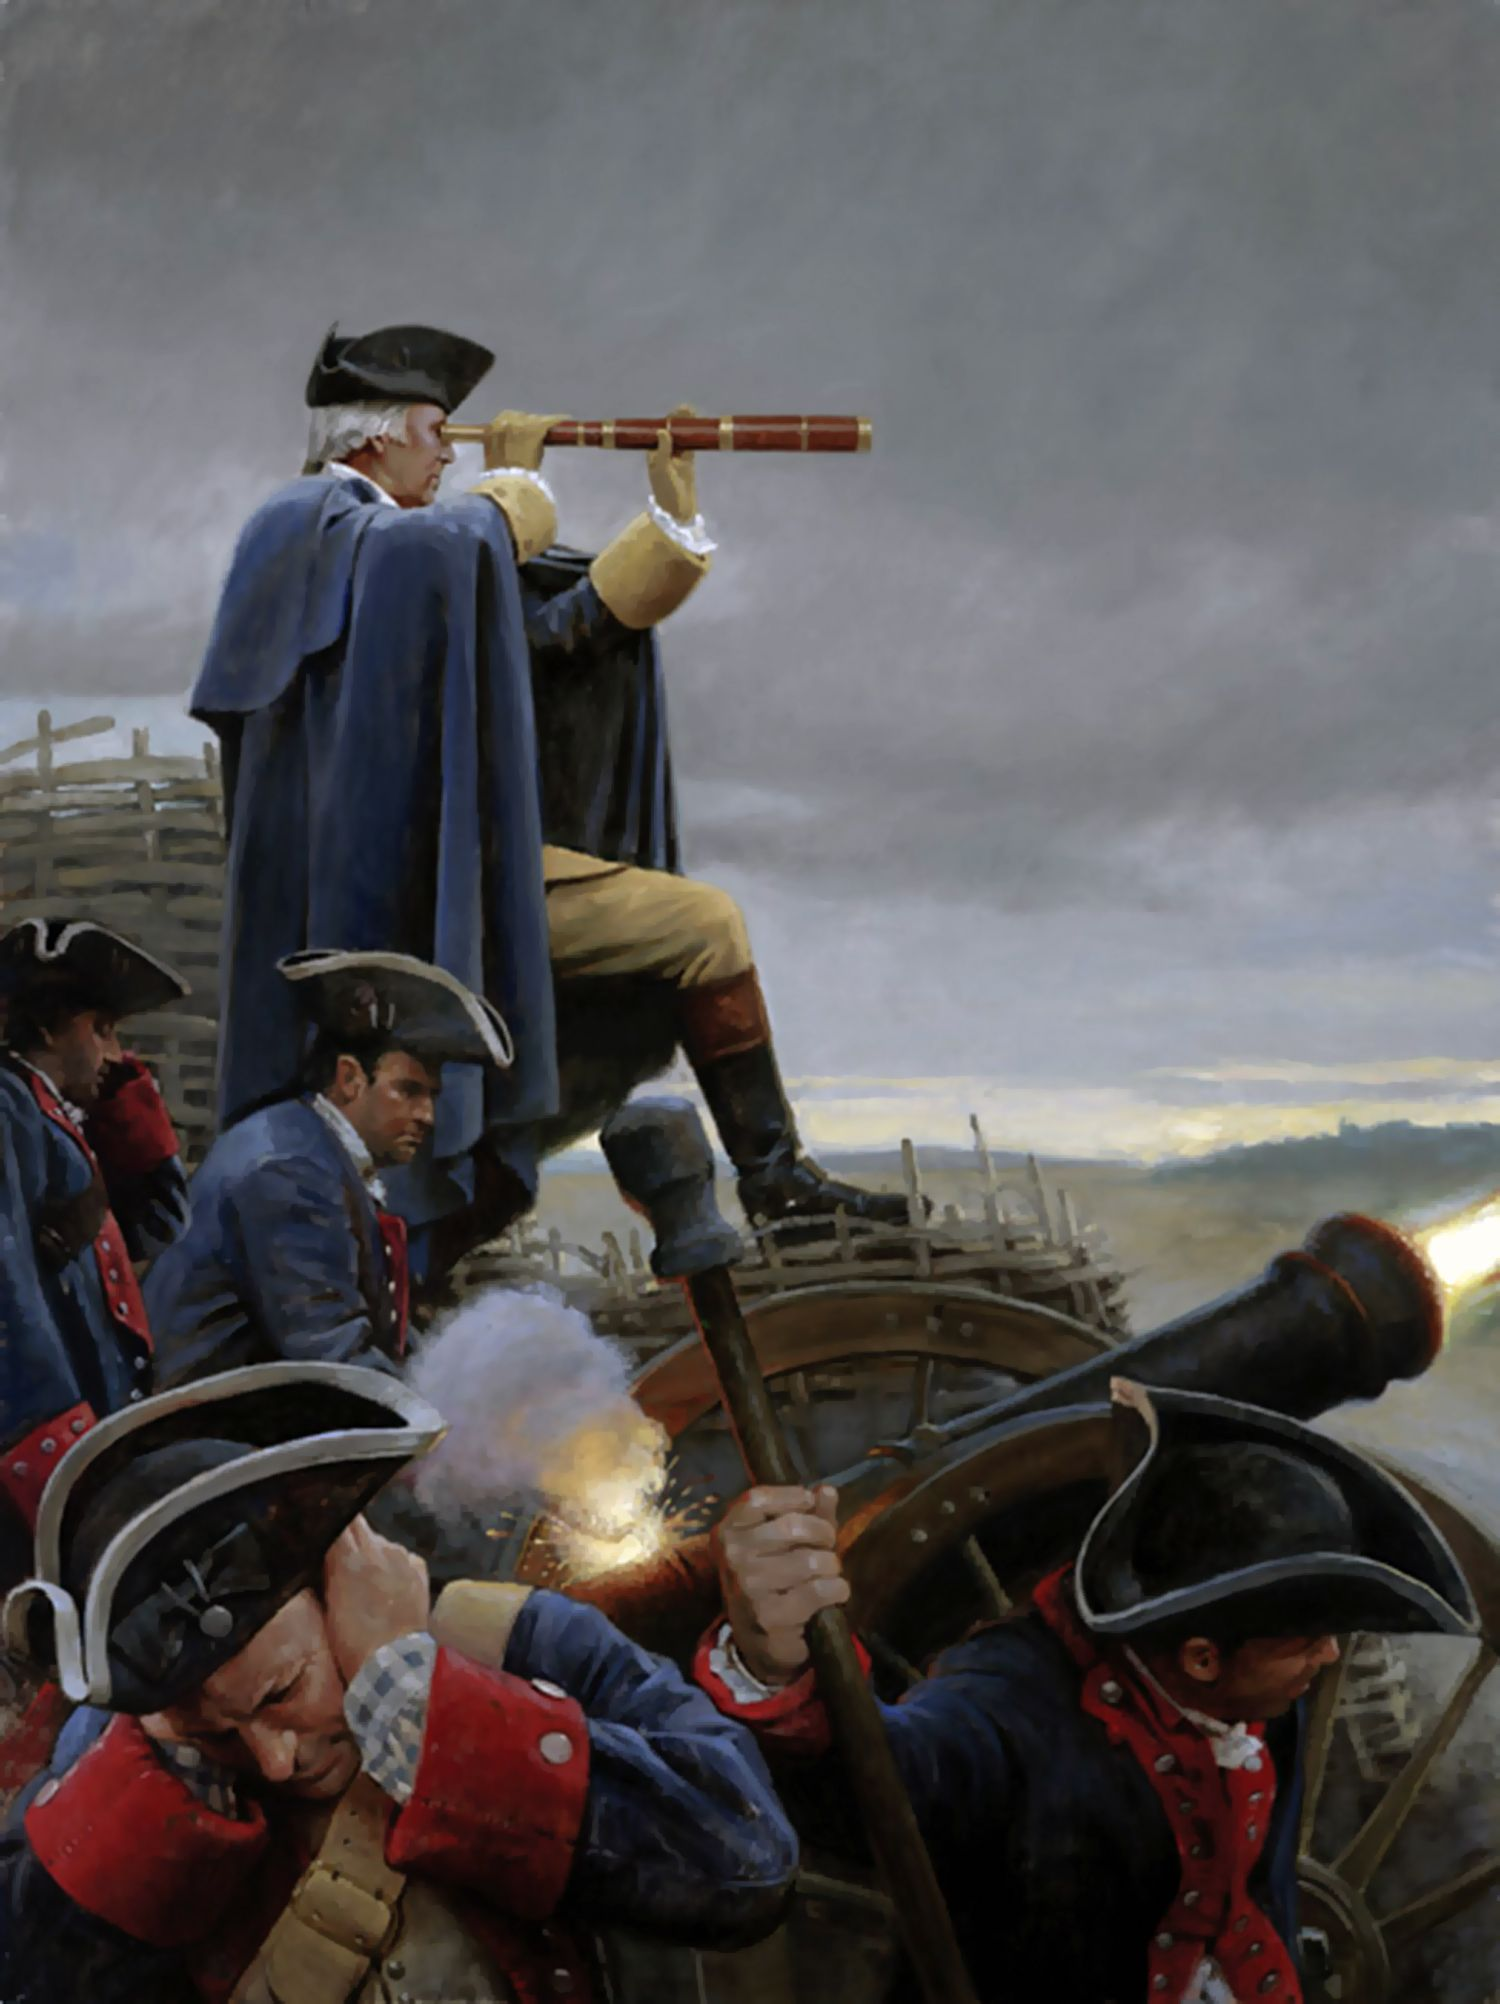 battle of yorktown essay Below is an essay on battle of yorktown from anti essays, your source for research papers, essays, and term paper examples victory at the battle of yorktown.